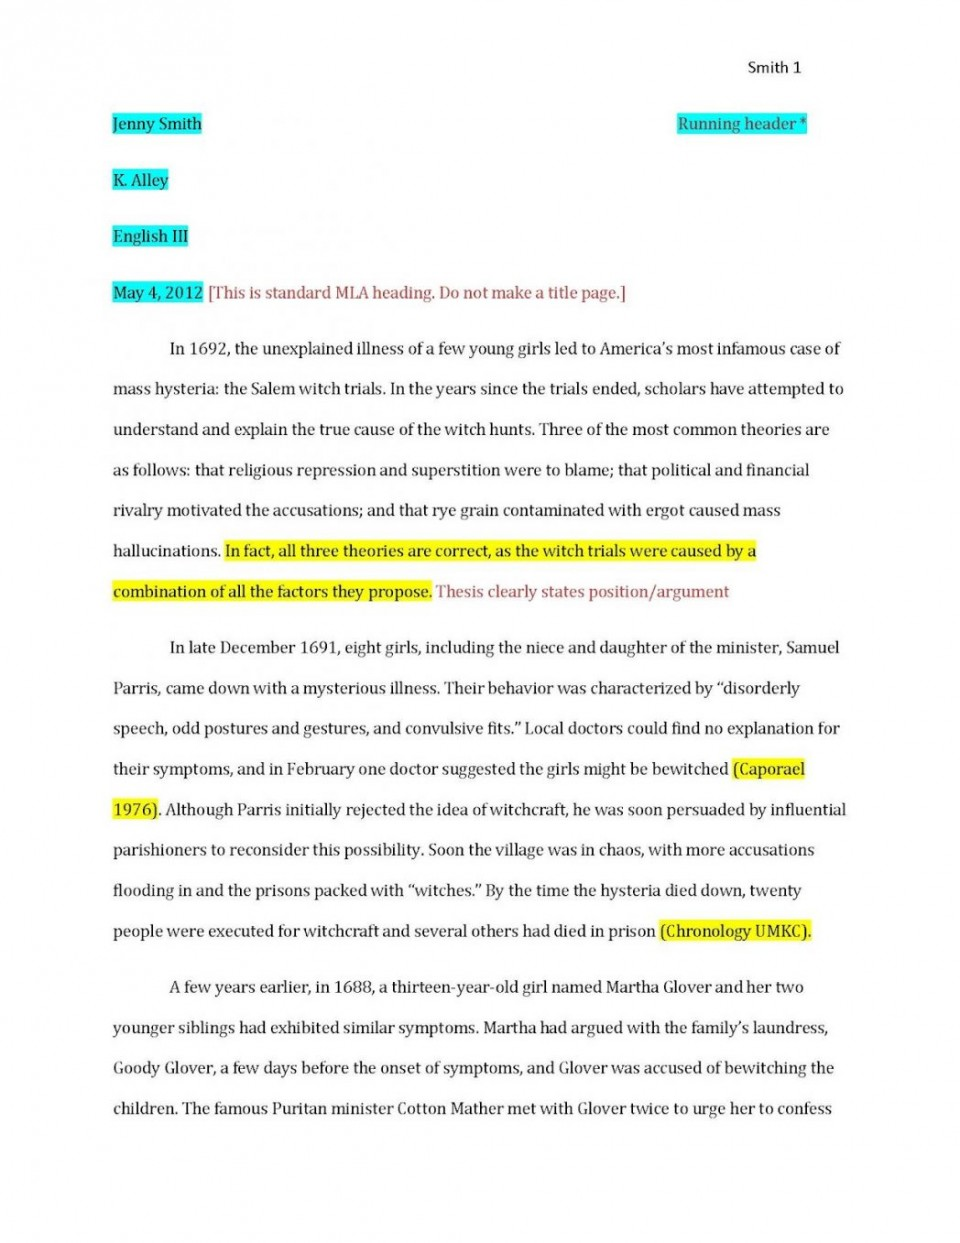 002 Mla Format Essay Generator Author Date References System Ready Set Automaticpaper P 1048x1357 Wondrous Bot Online Free Reviews 960